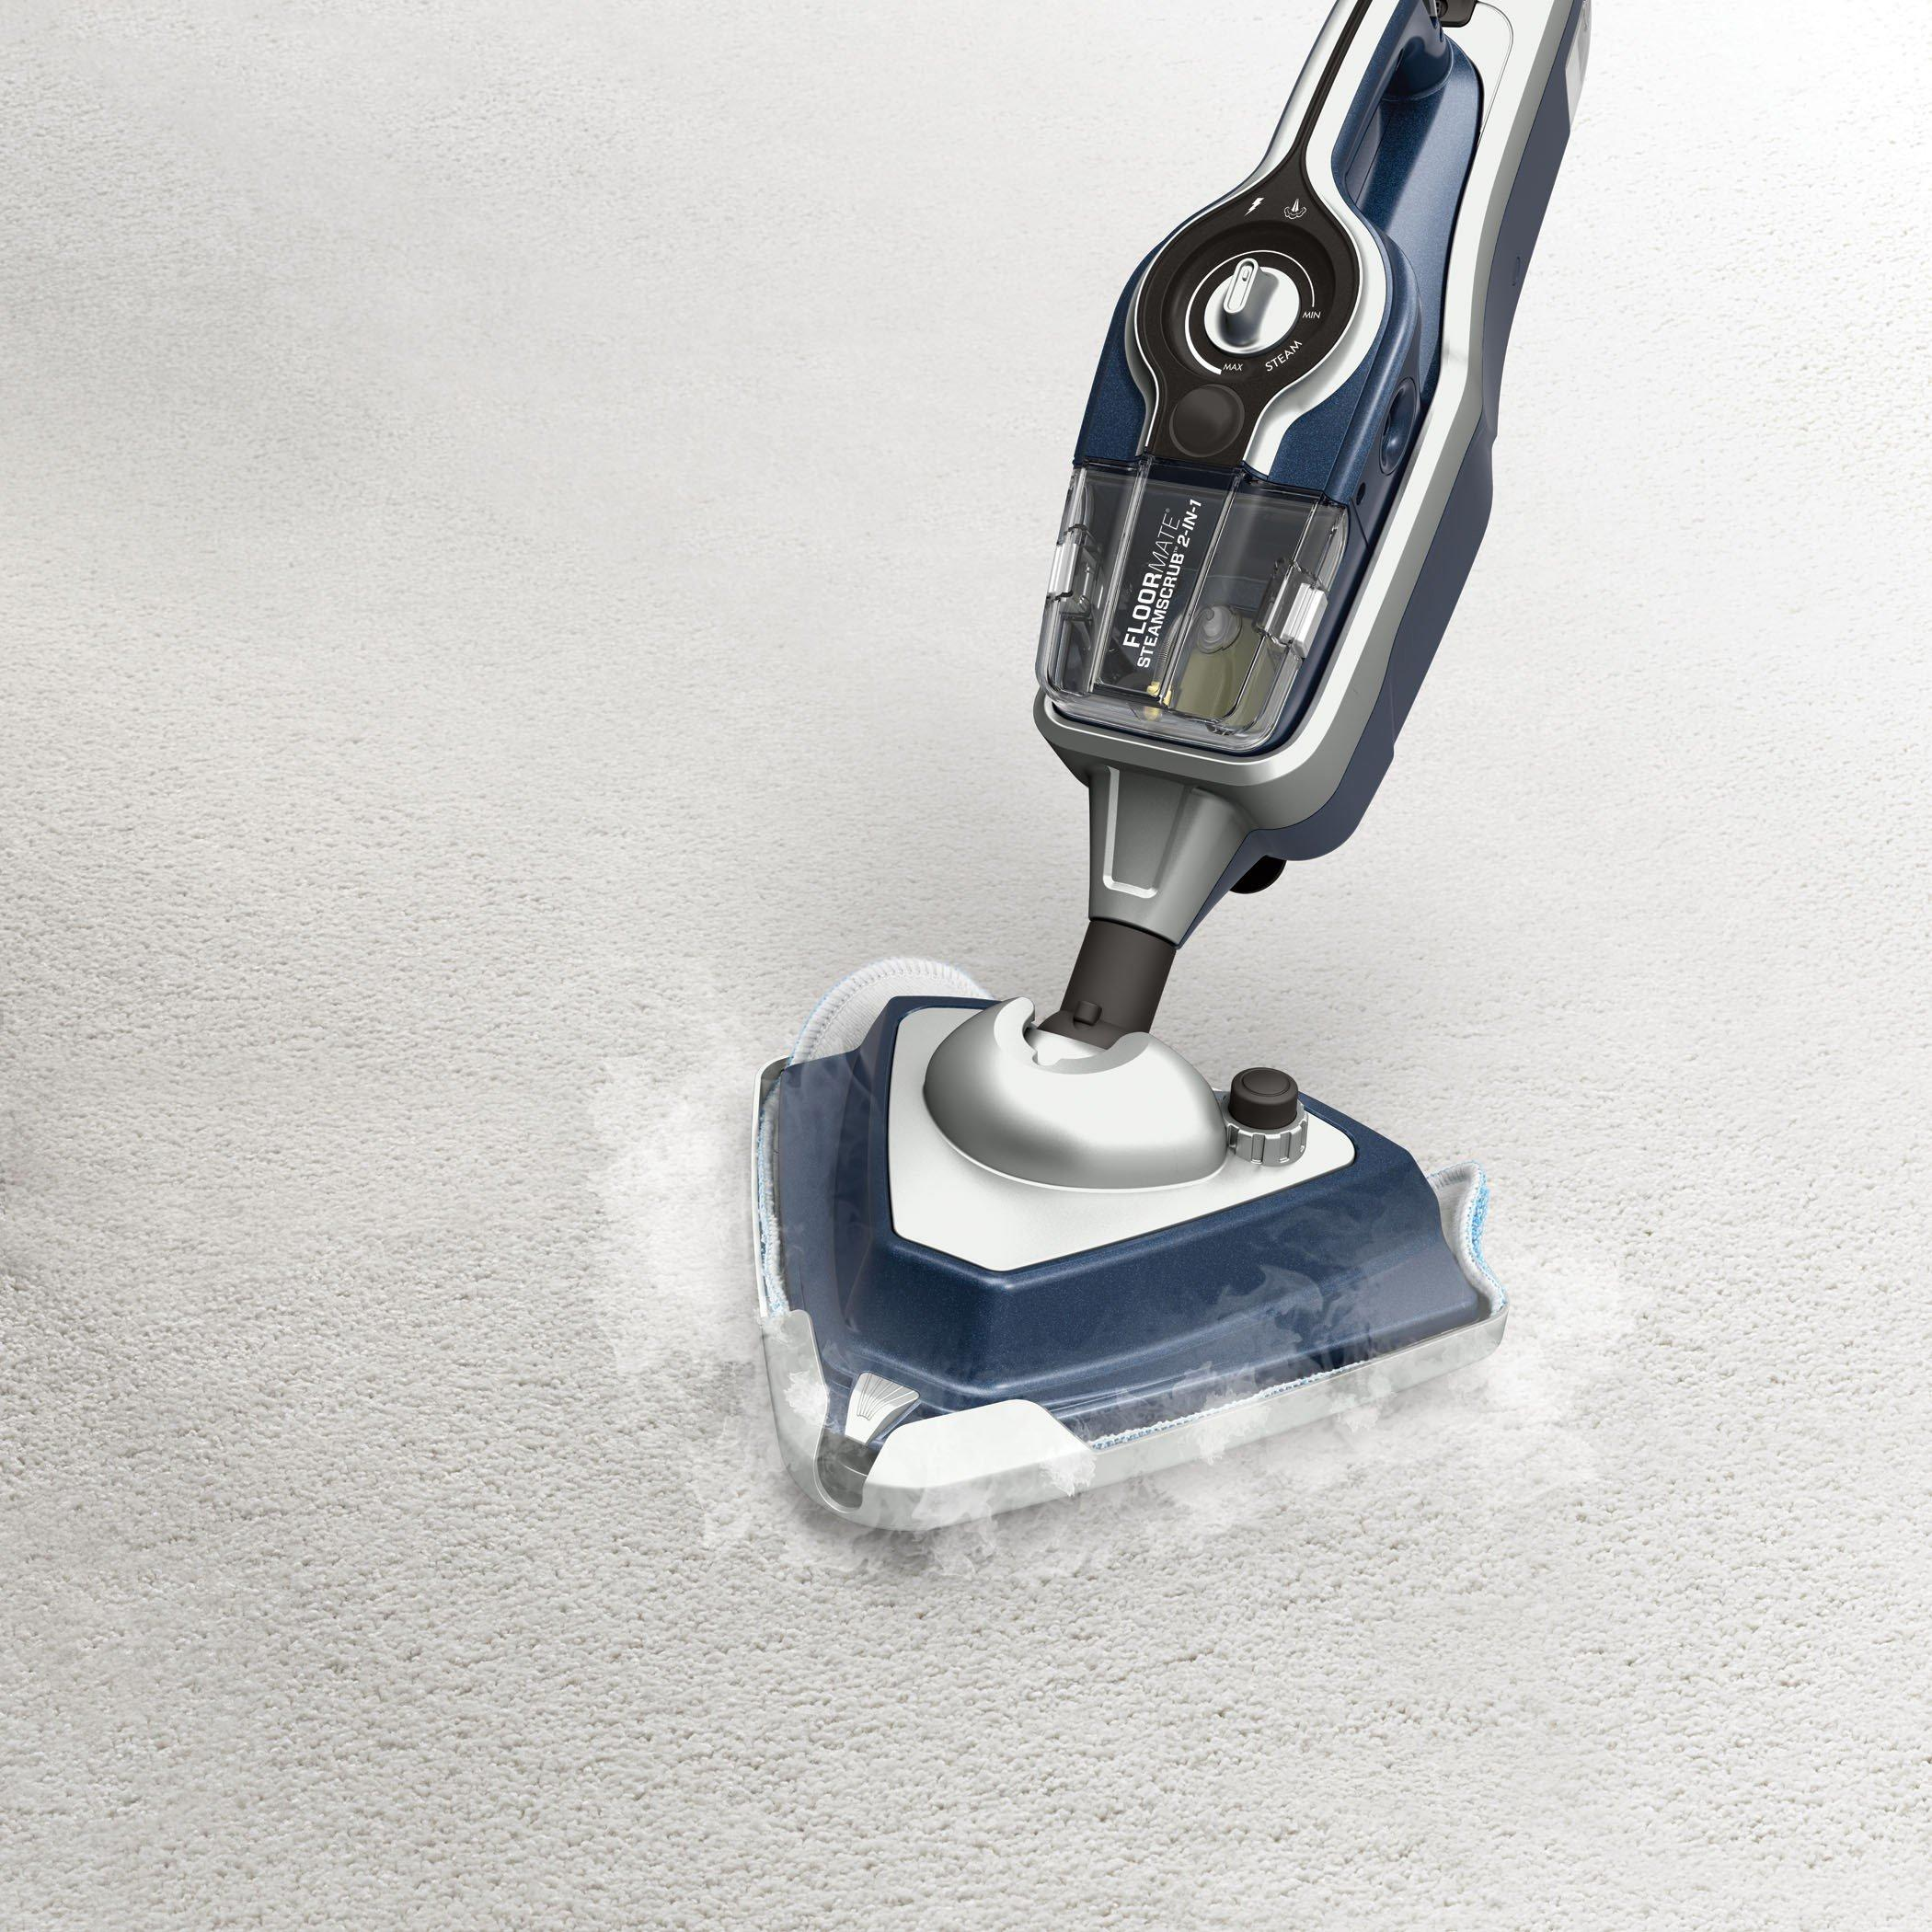 FloorMate SteamScrub Plus 2-in-1 Steam Mop6